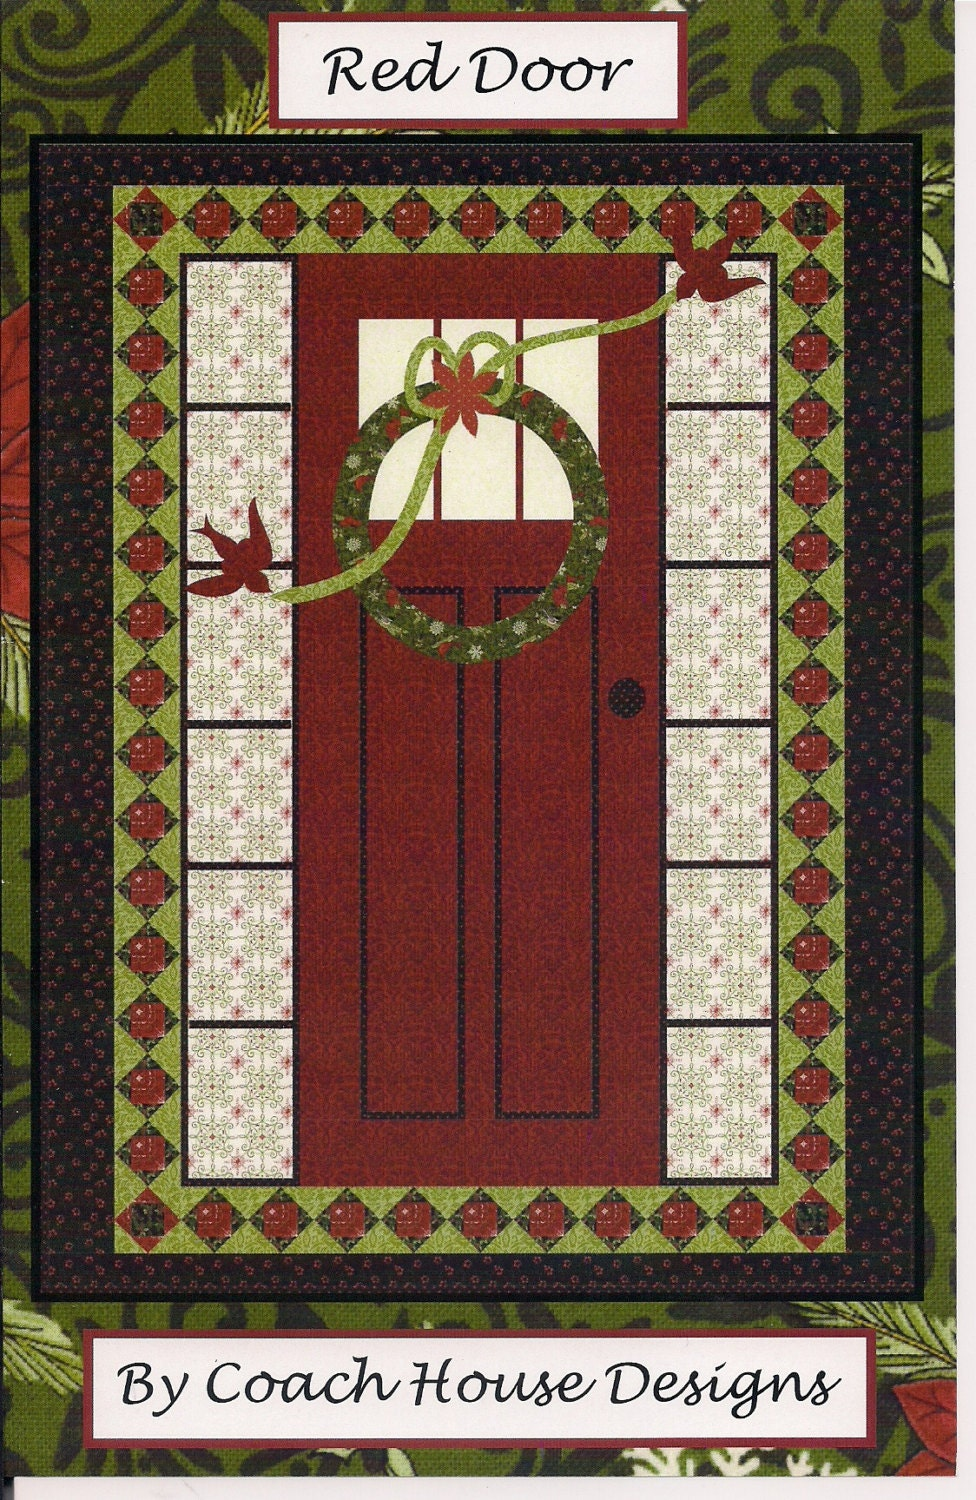 quilt pattern red door by coach house designs by lulubears ForRed Door Design Quilts